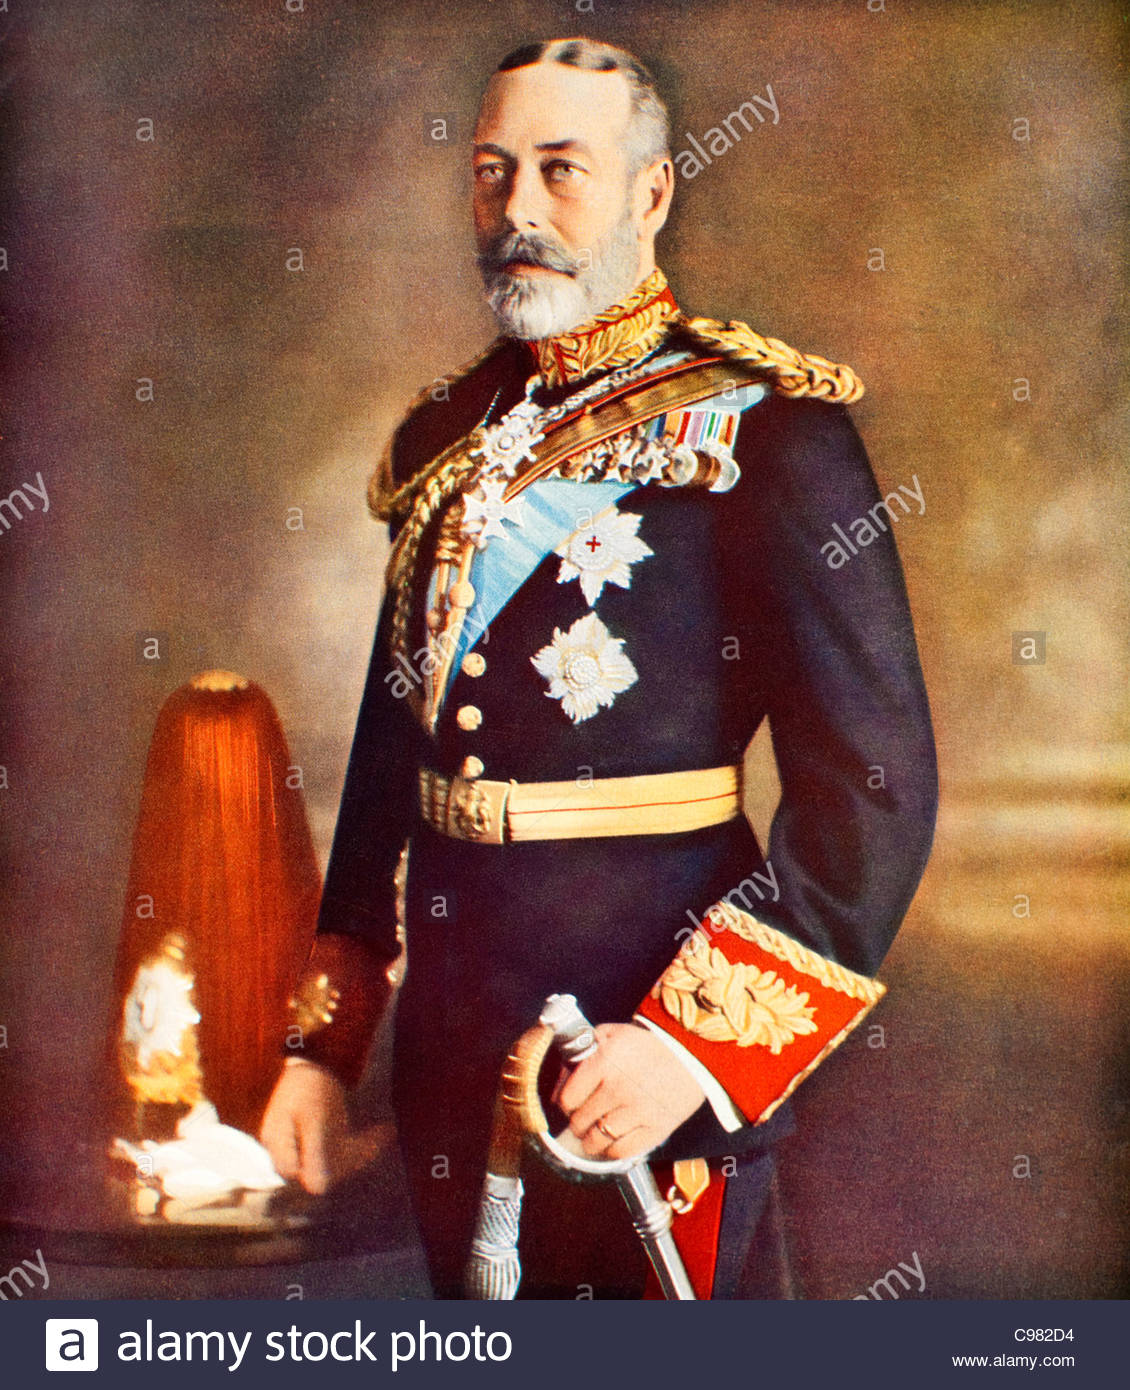 Antique portrait of King George V - Stock Image